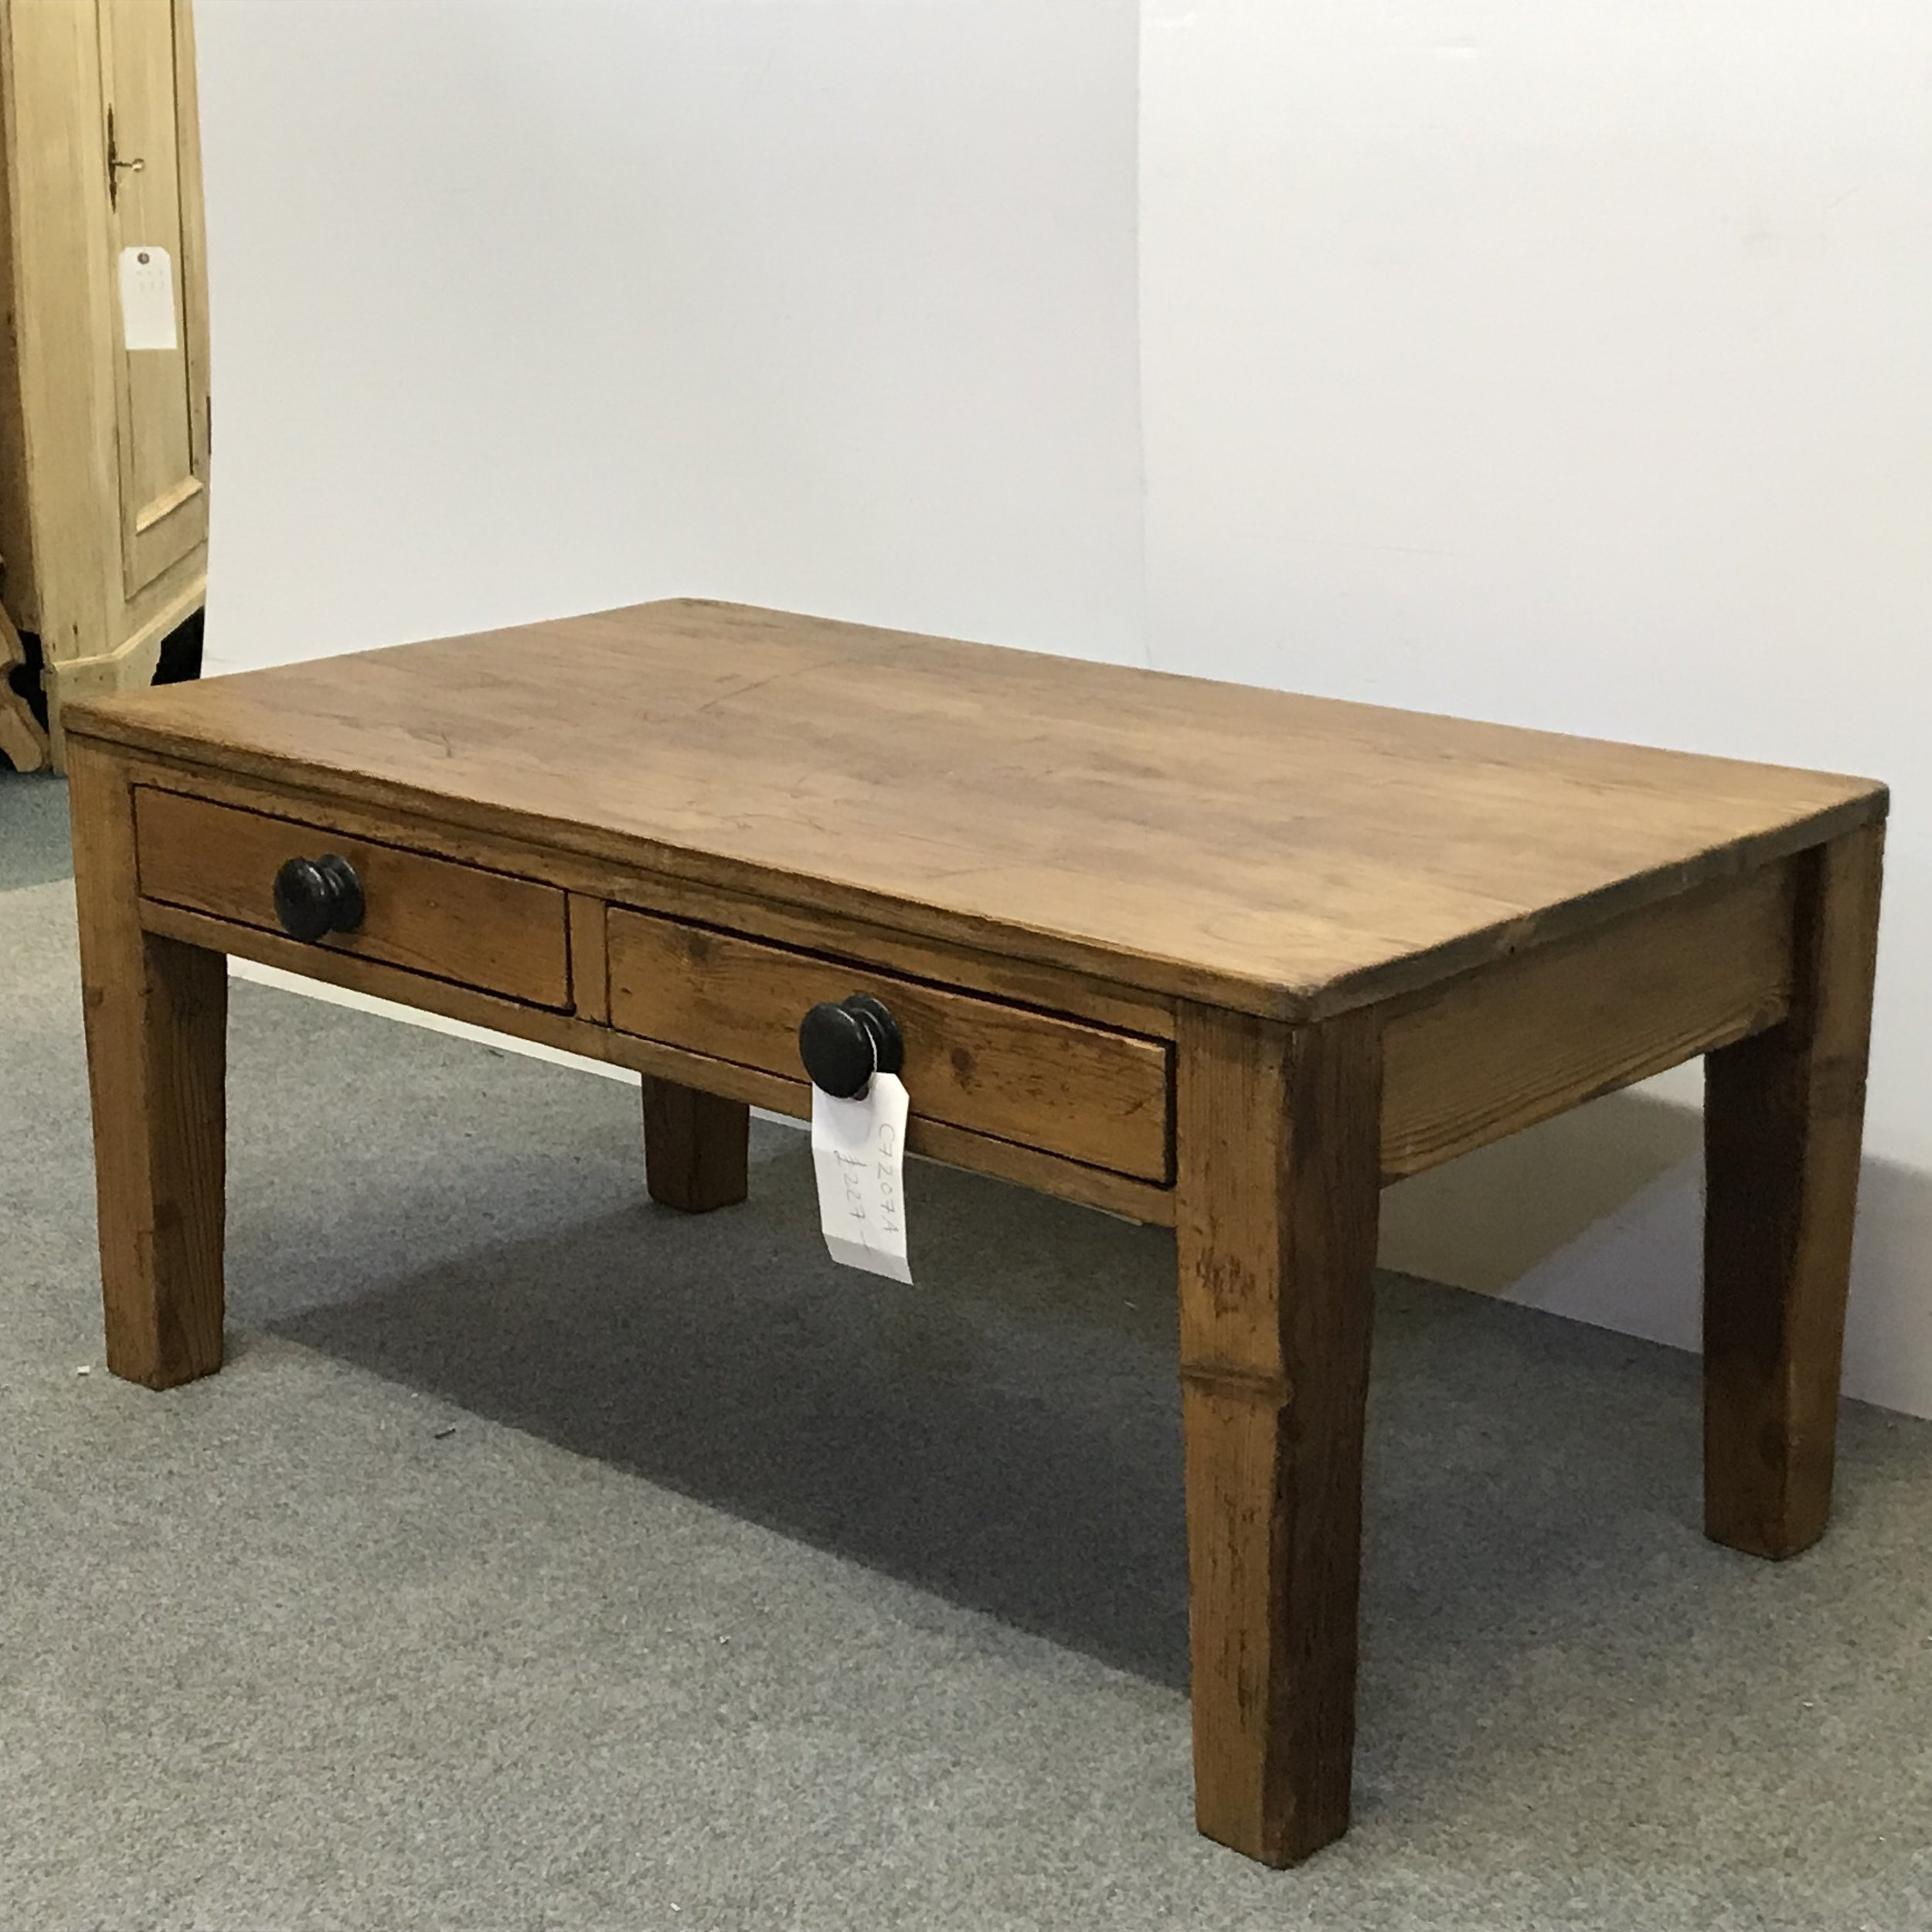 Coffee table with tapered legs